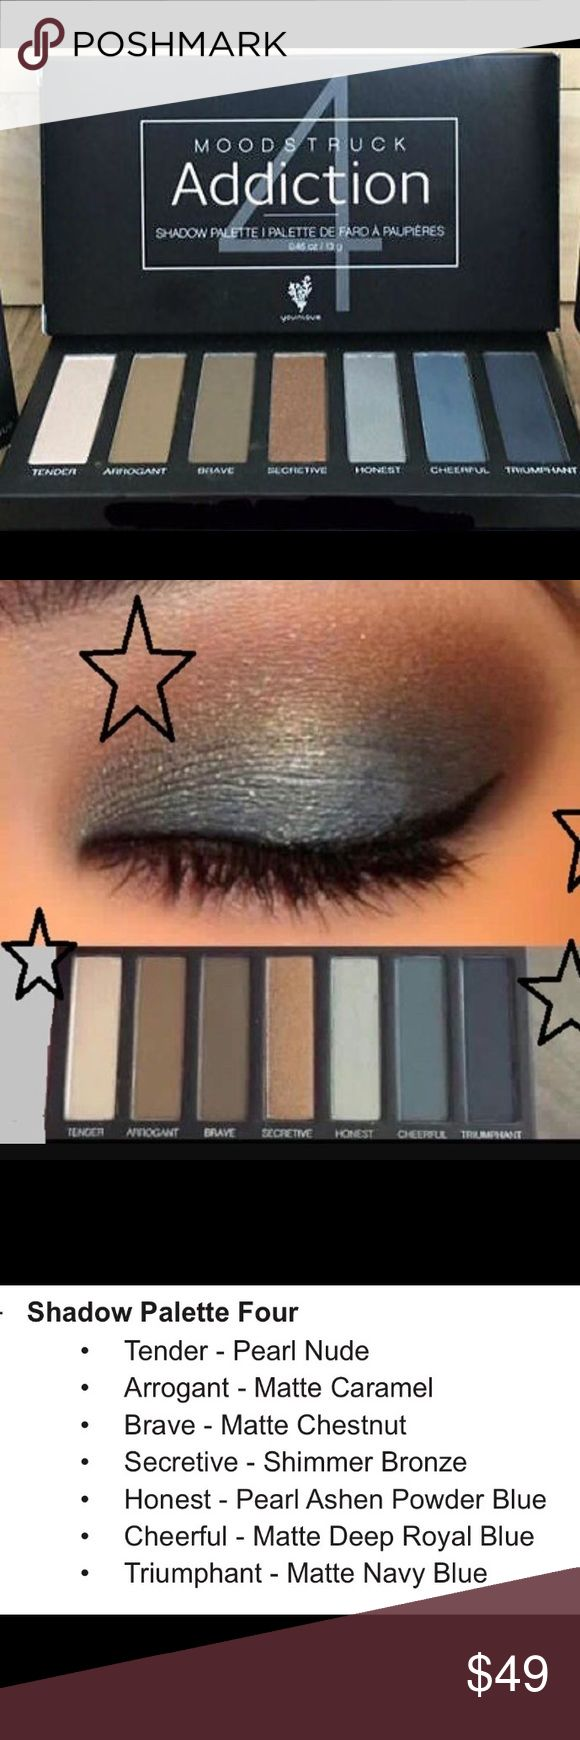 Younique Addiction Palette 4 NIB New in box - seven crease-resistant, long-wearing, buildable colors. The shadows apply dry for adjustable coverage or wet for more intense color and deliver smooth, long-lasting looks. Addicted yet? Younique Makeup Eyeshadow